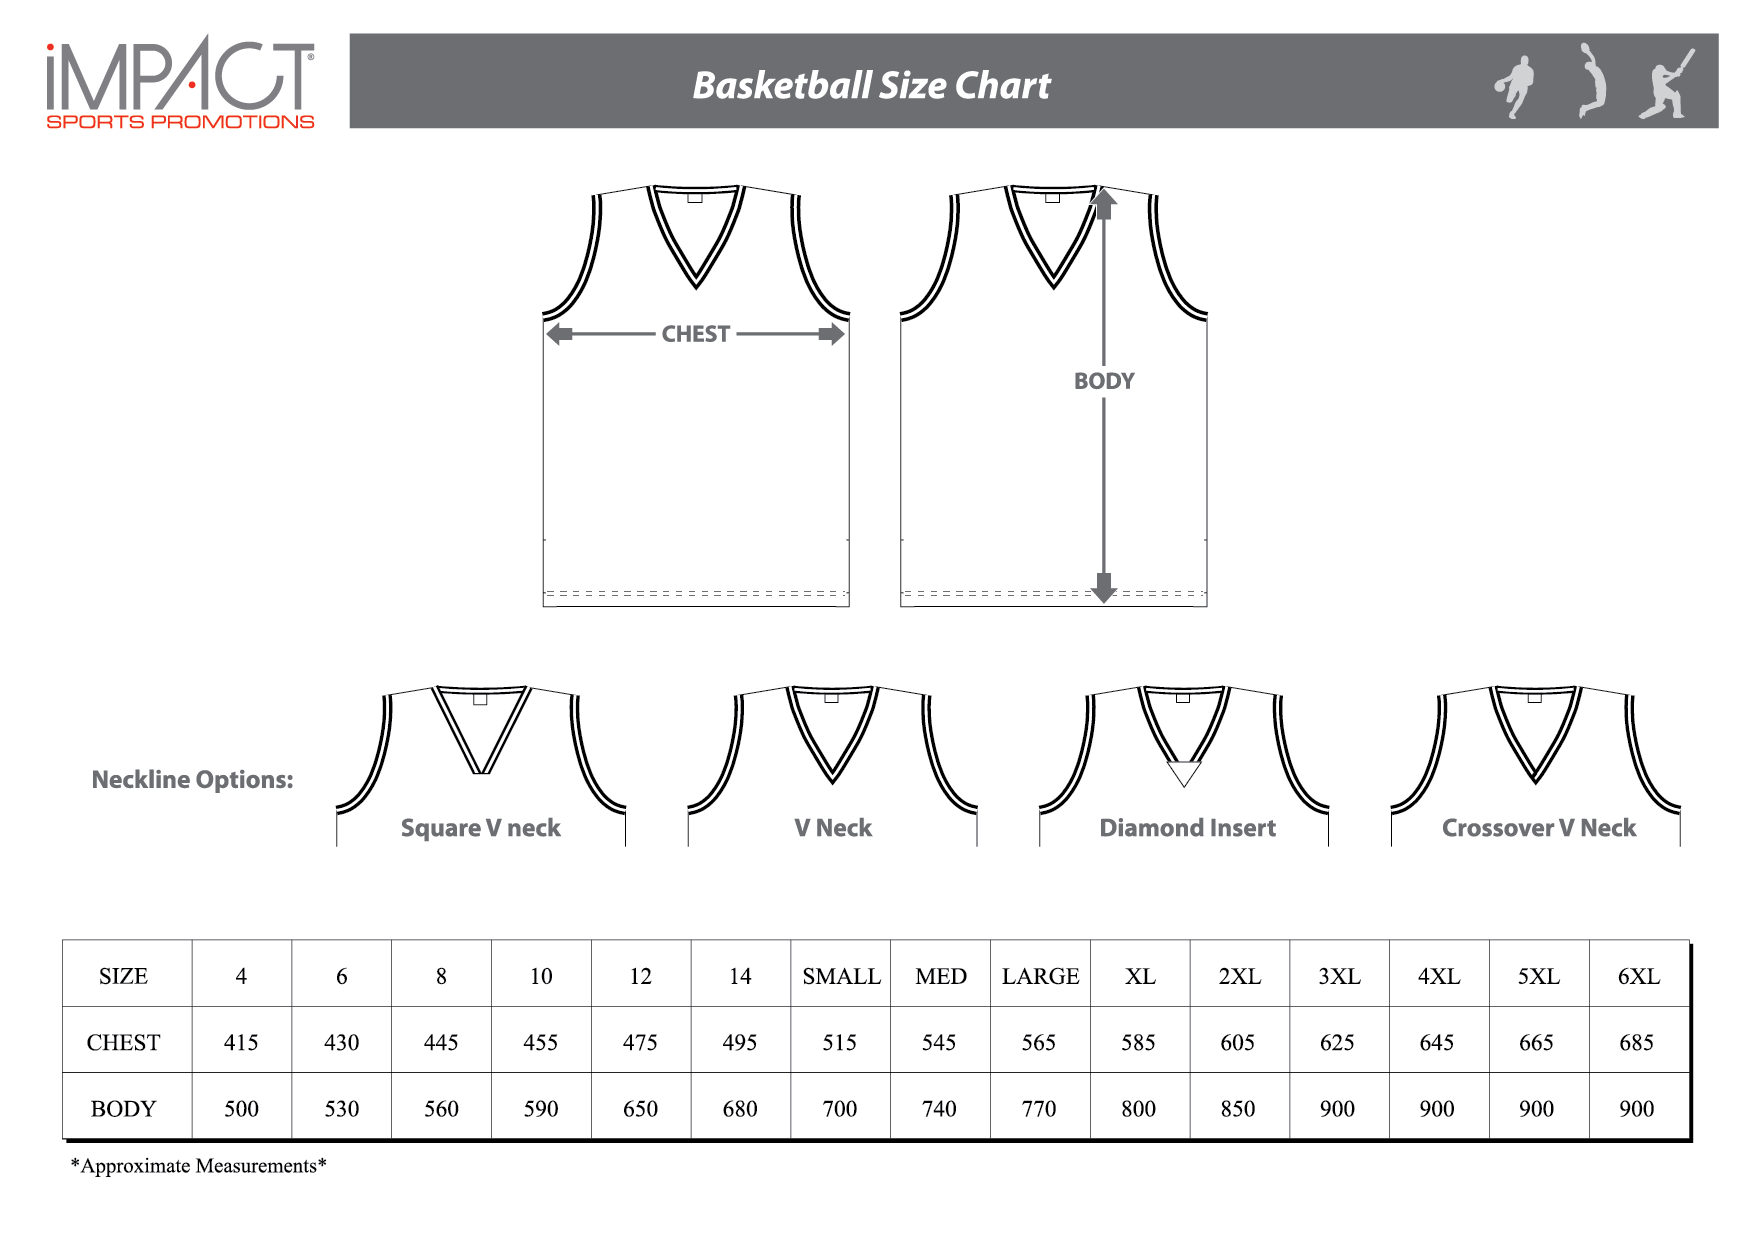 Impact SP Basketball Size Chart